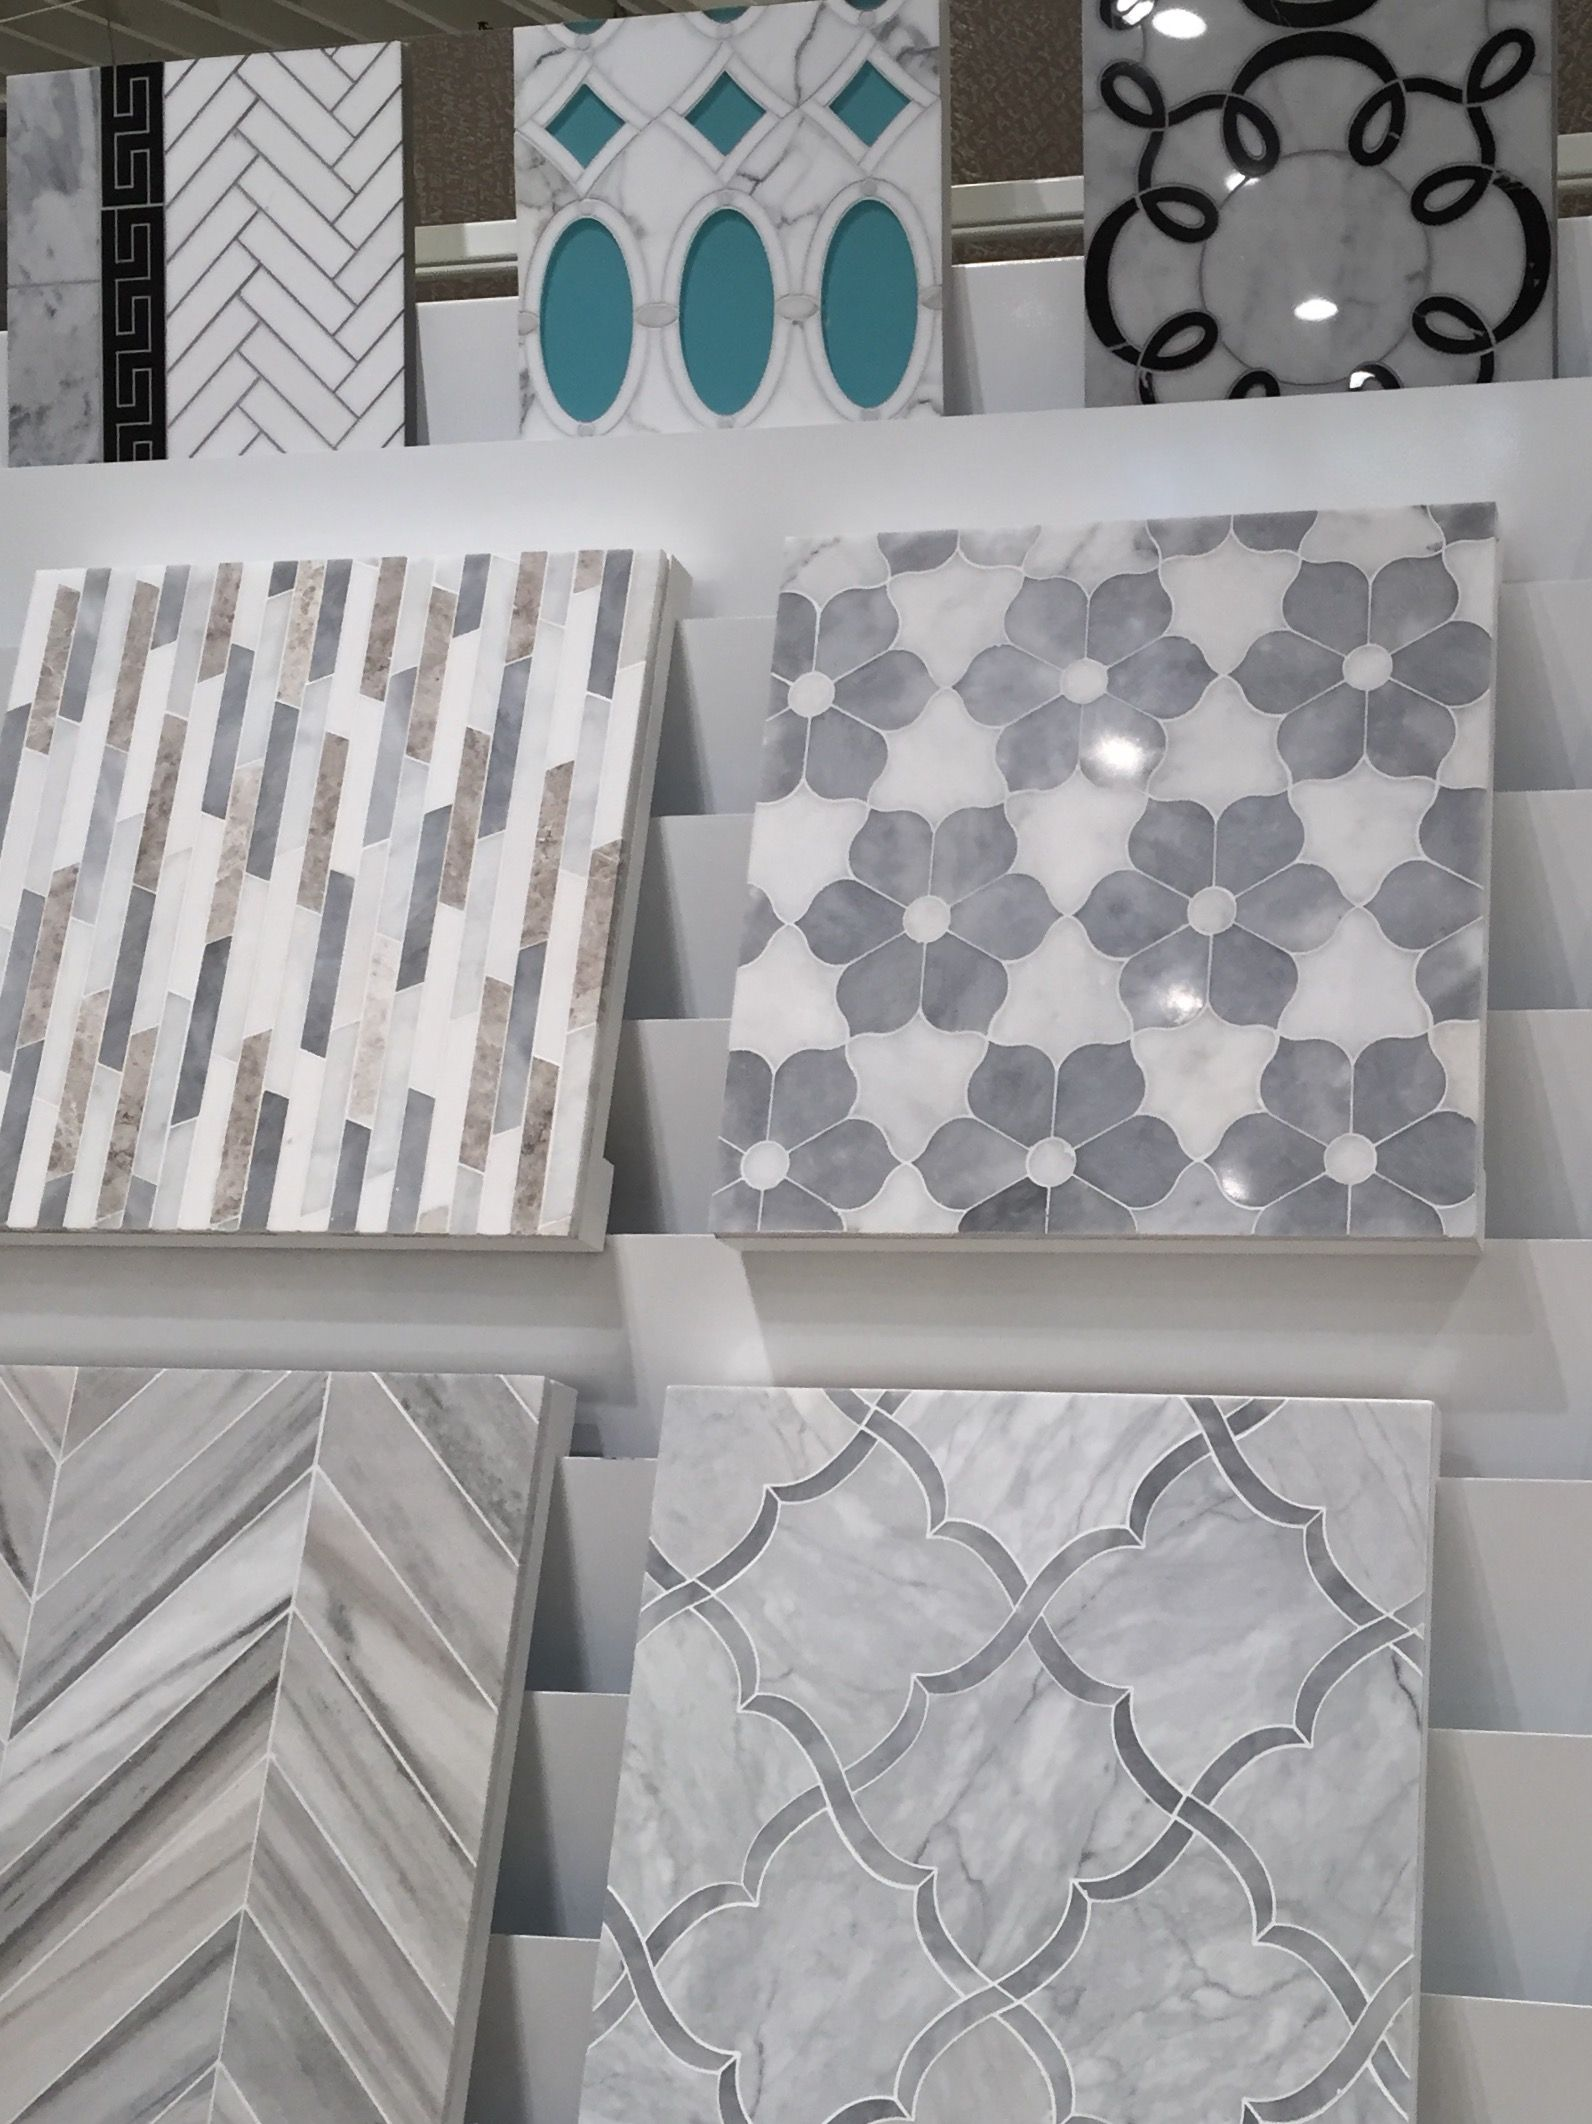 Tile Decor Store Interesting An Array Of Beautiful Patterned Tiles A Fun Way To Add Inspiration